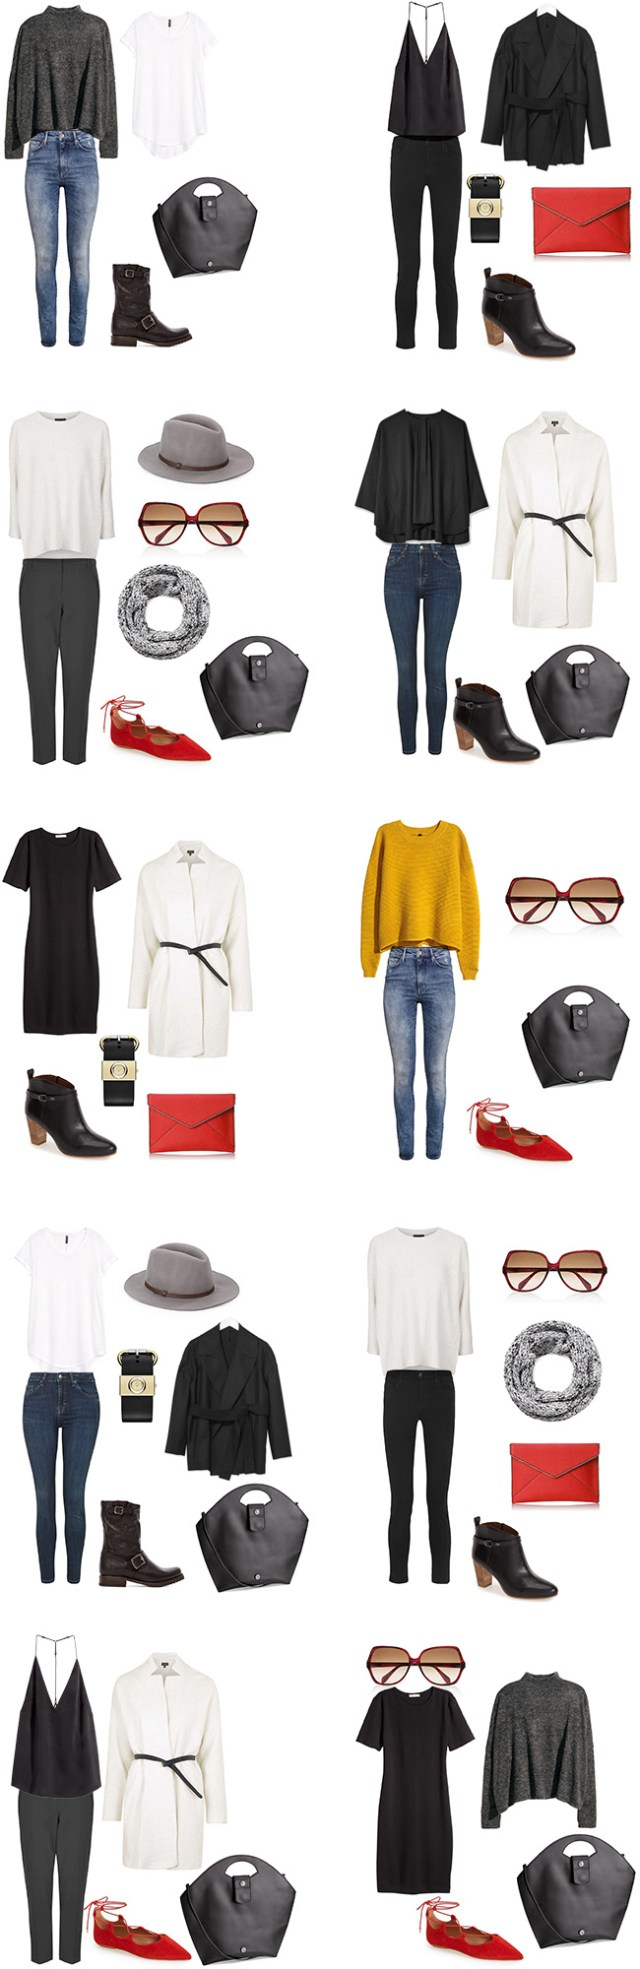 London England Outift Options